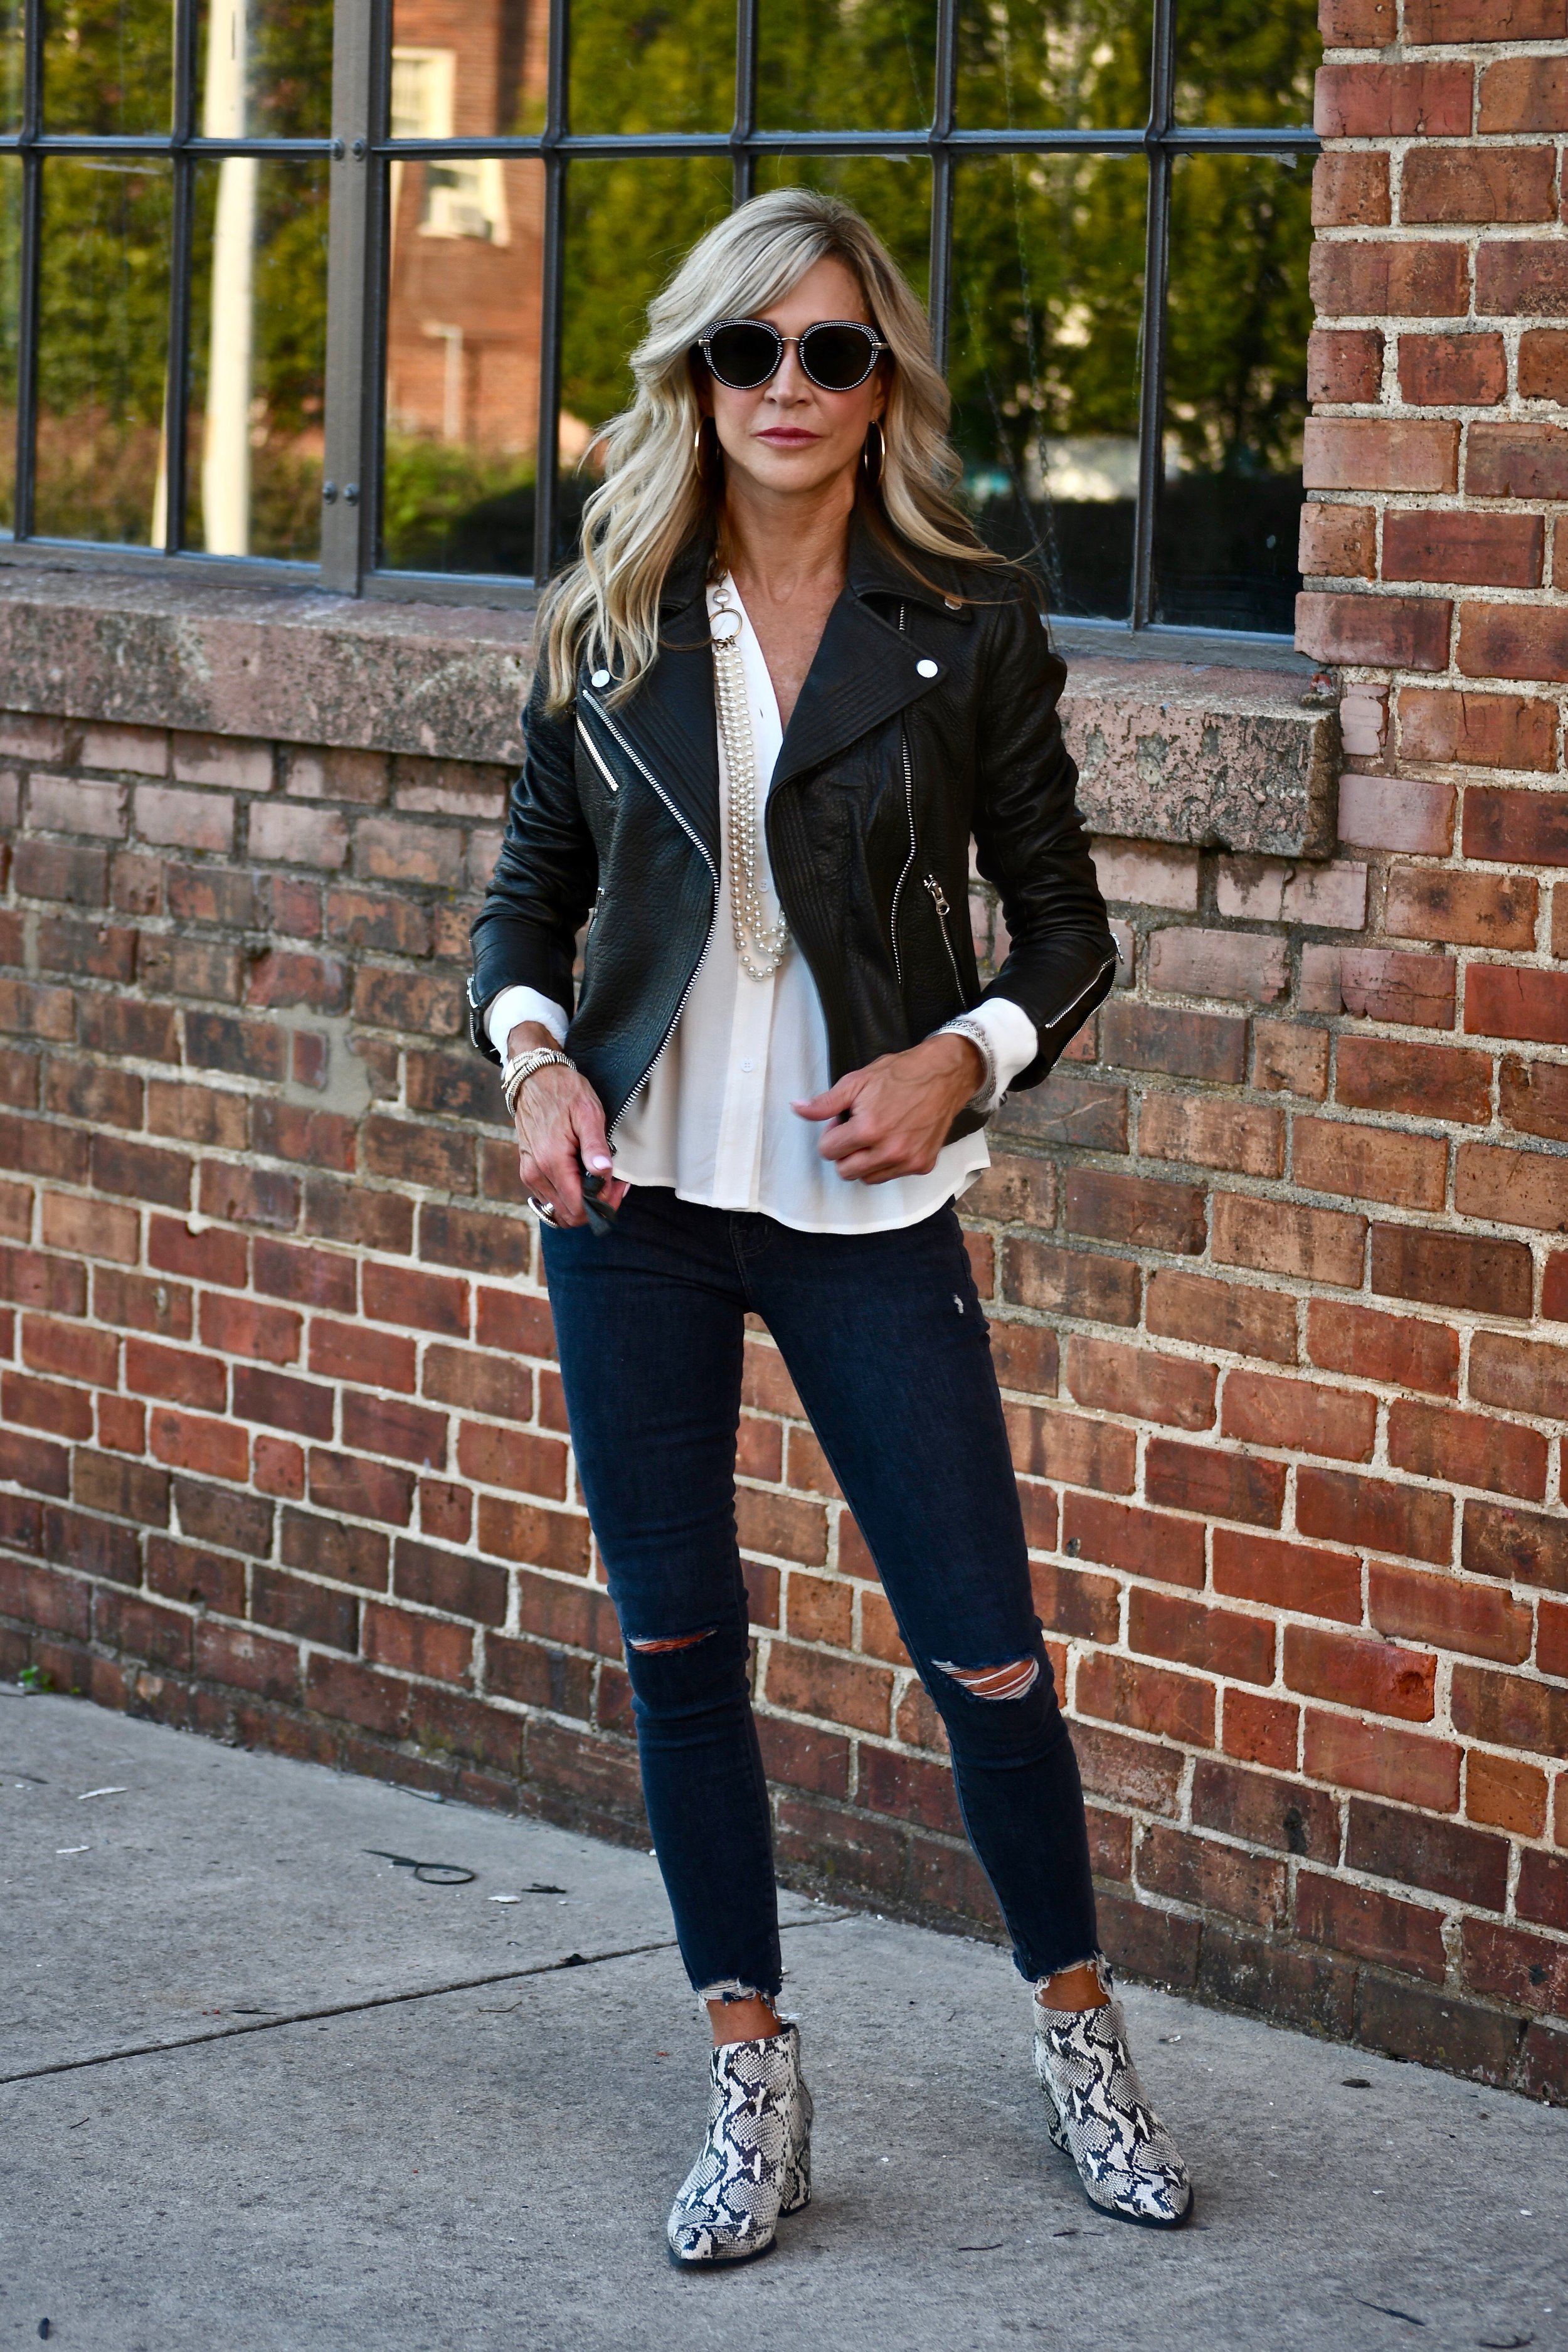 Leather Jacket styled for fall - Crazy Blonde Style